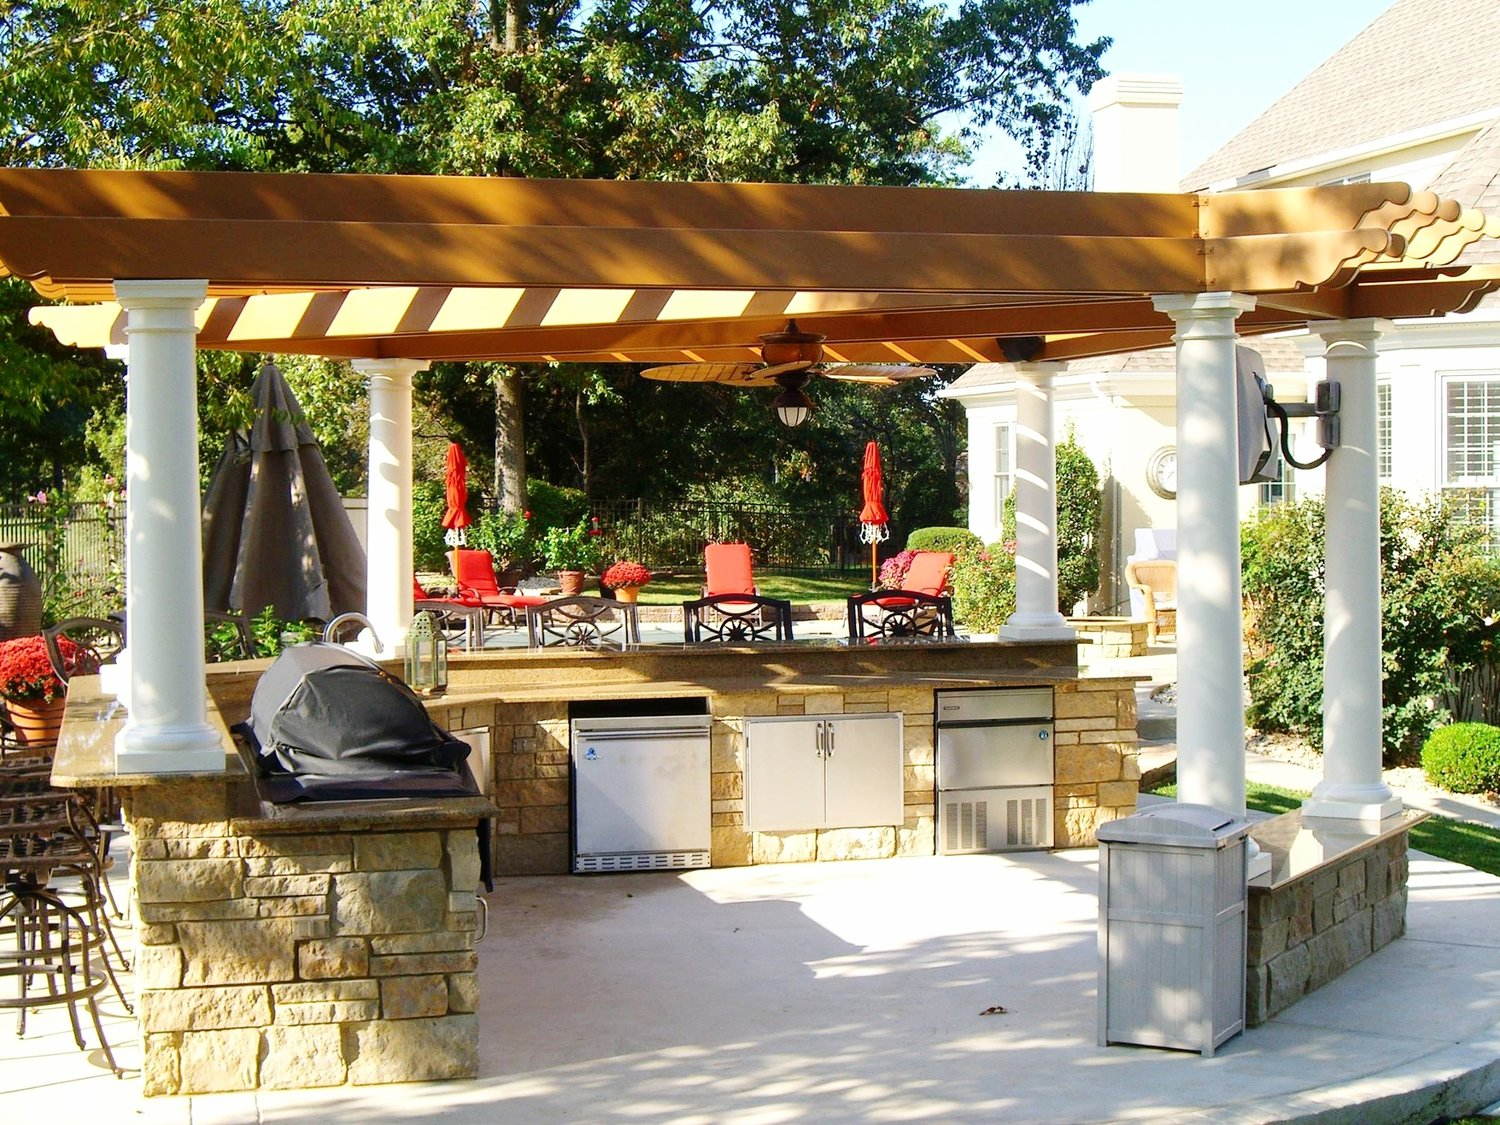 london-ontario-pergola-deck-company-14.jpeg